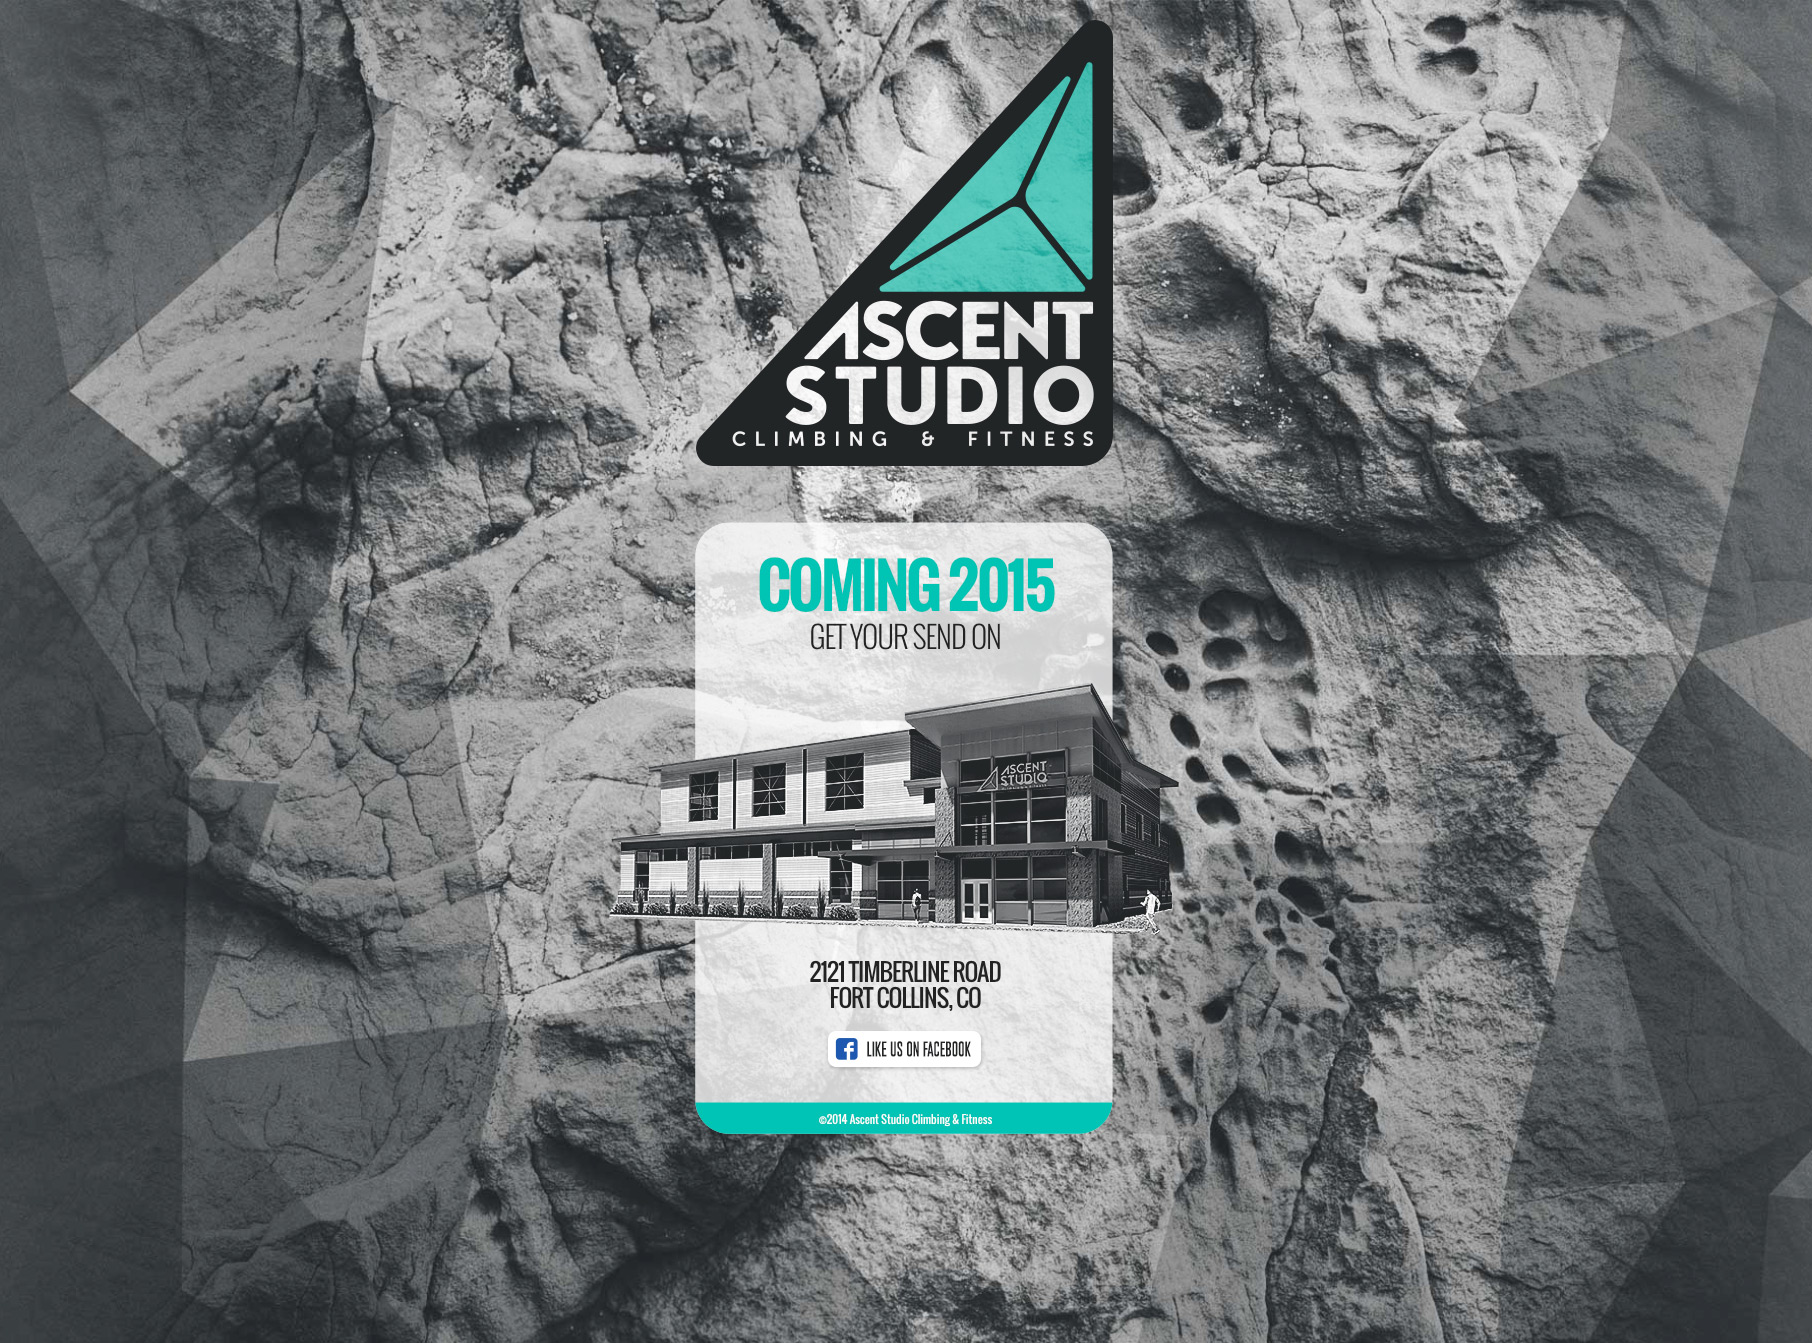 ascent_studio-2.jpg